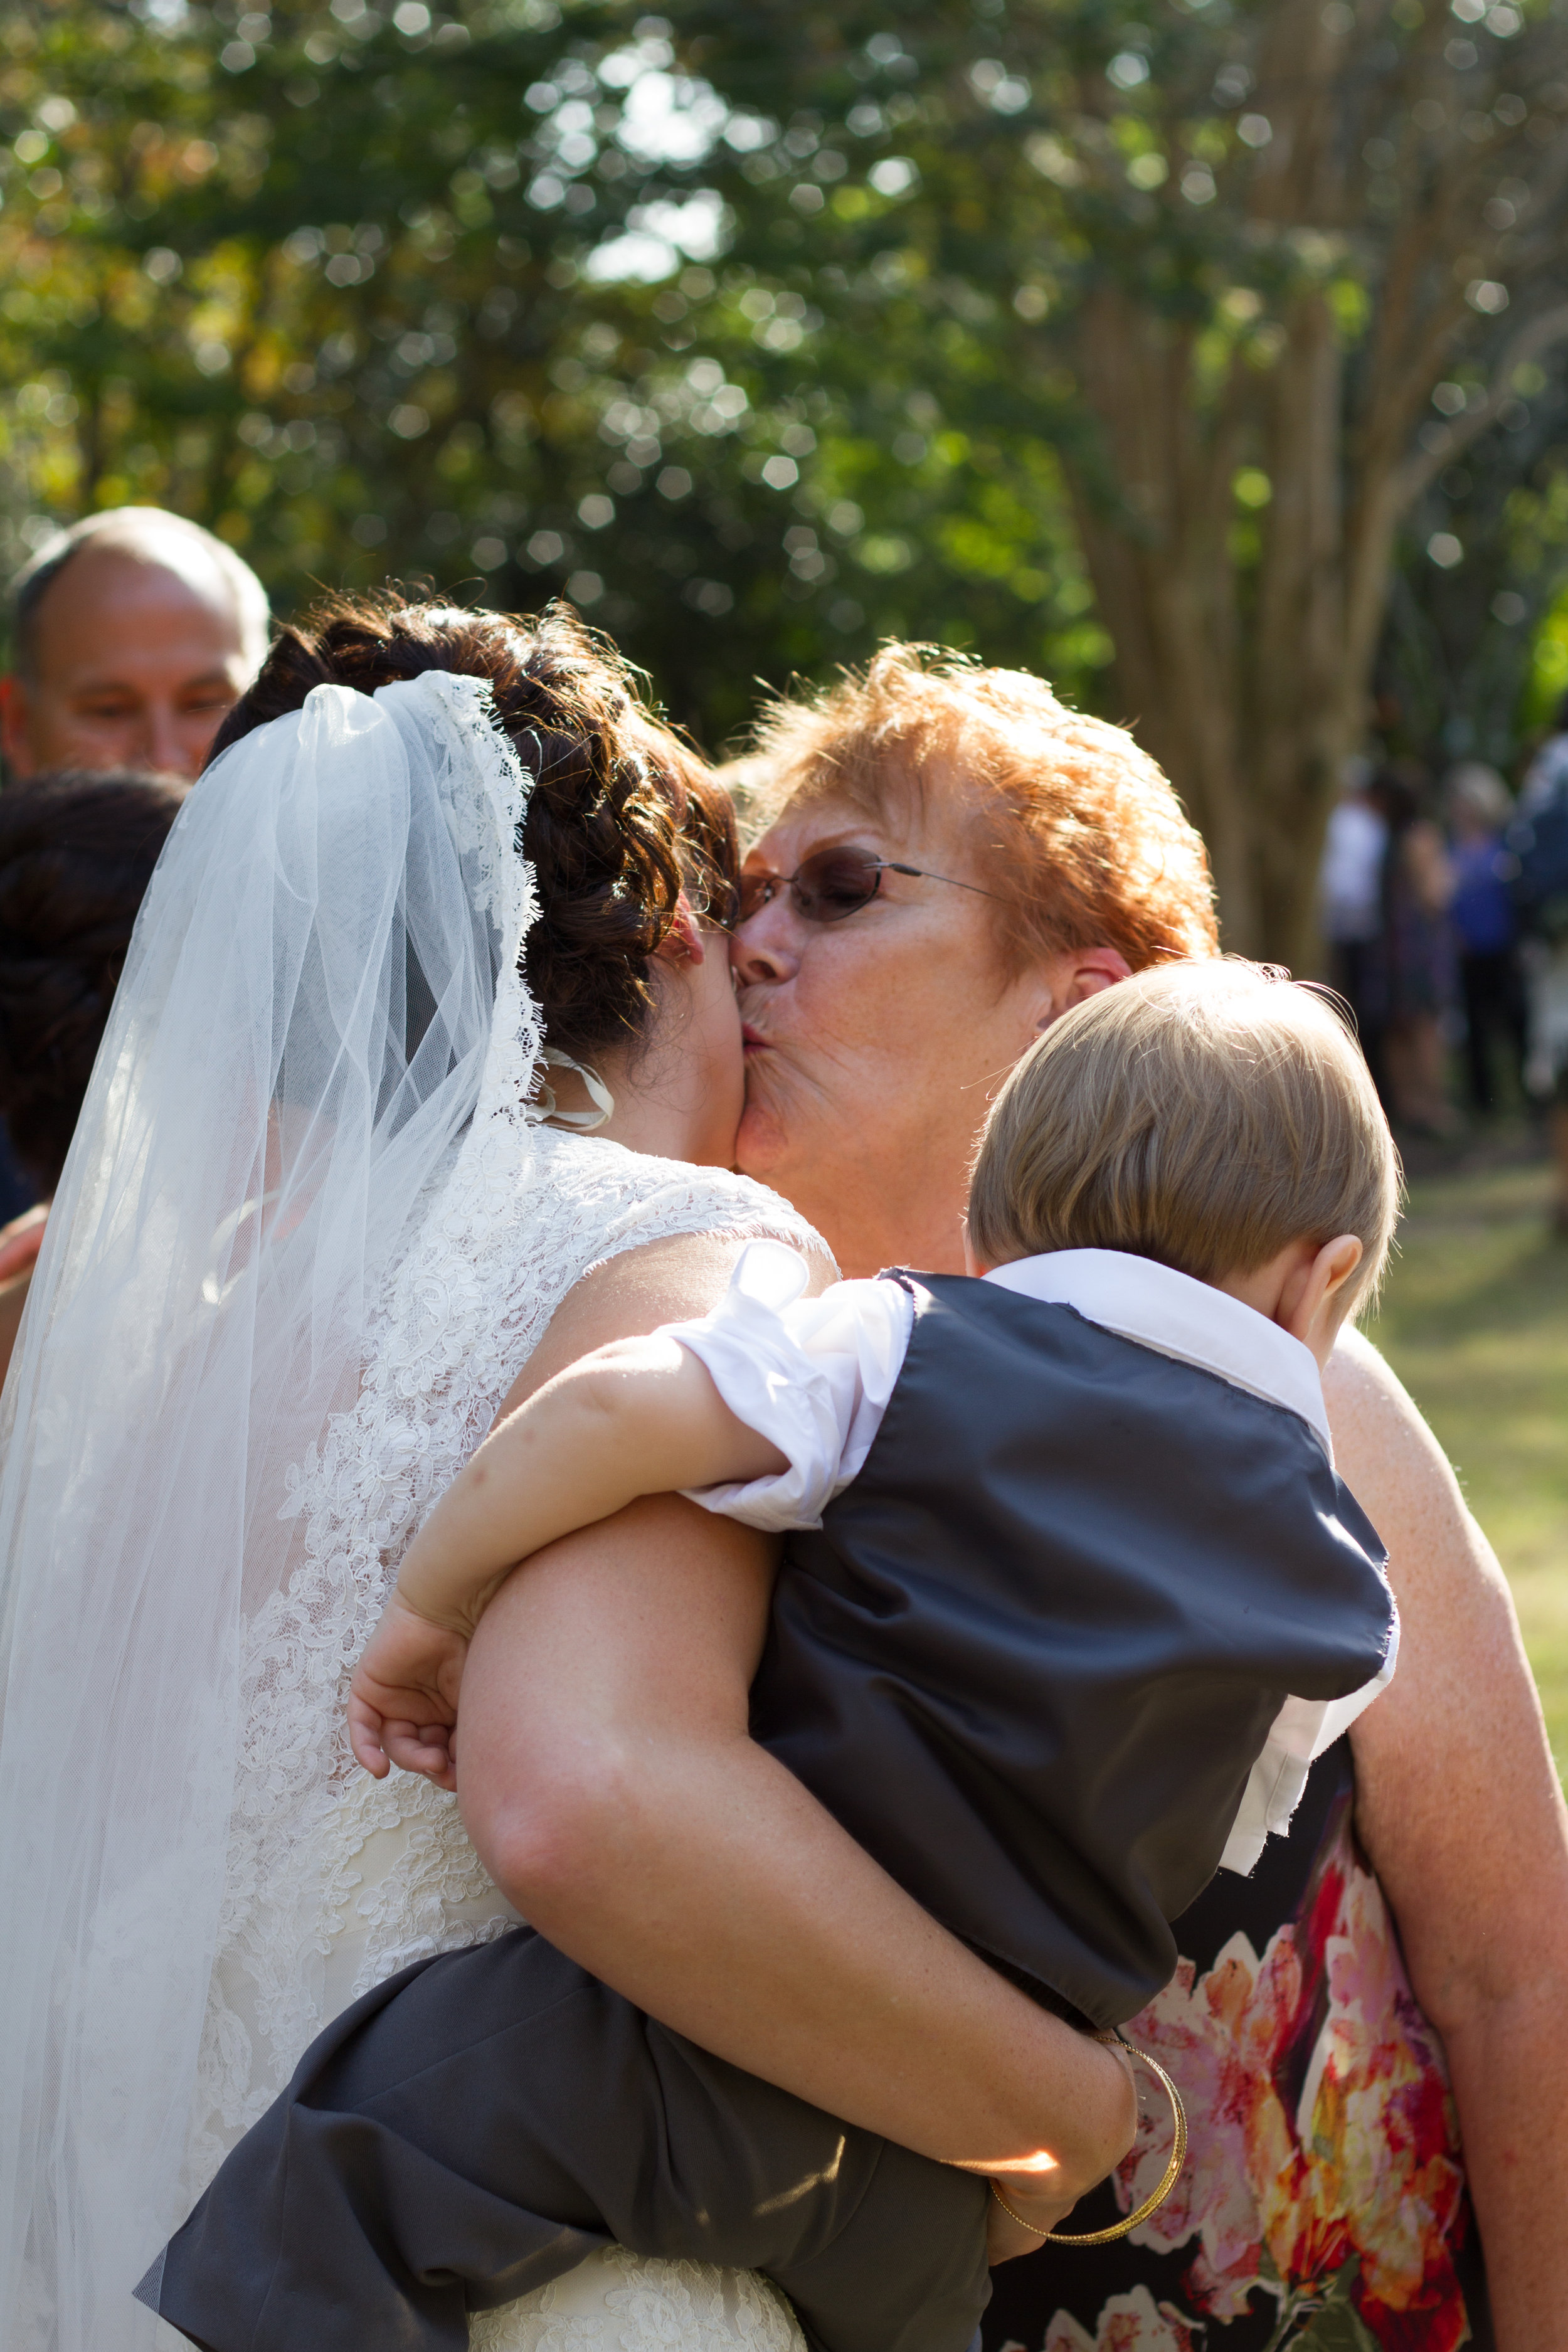 Jacqueline and Shawn Wedding (247 of 597).jpg